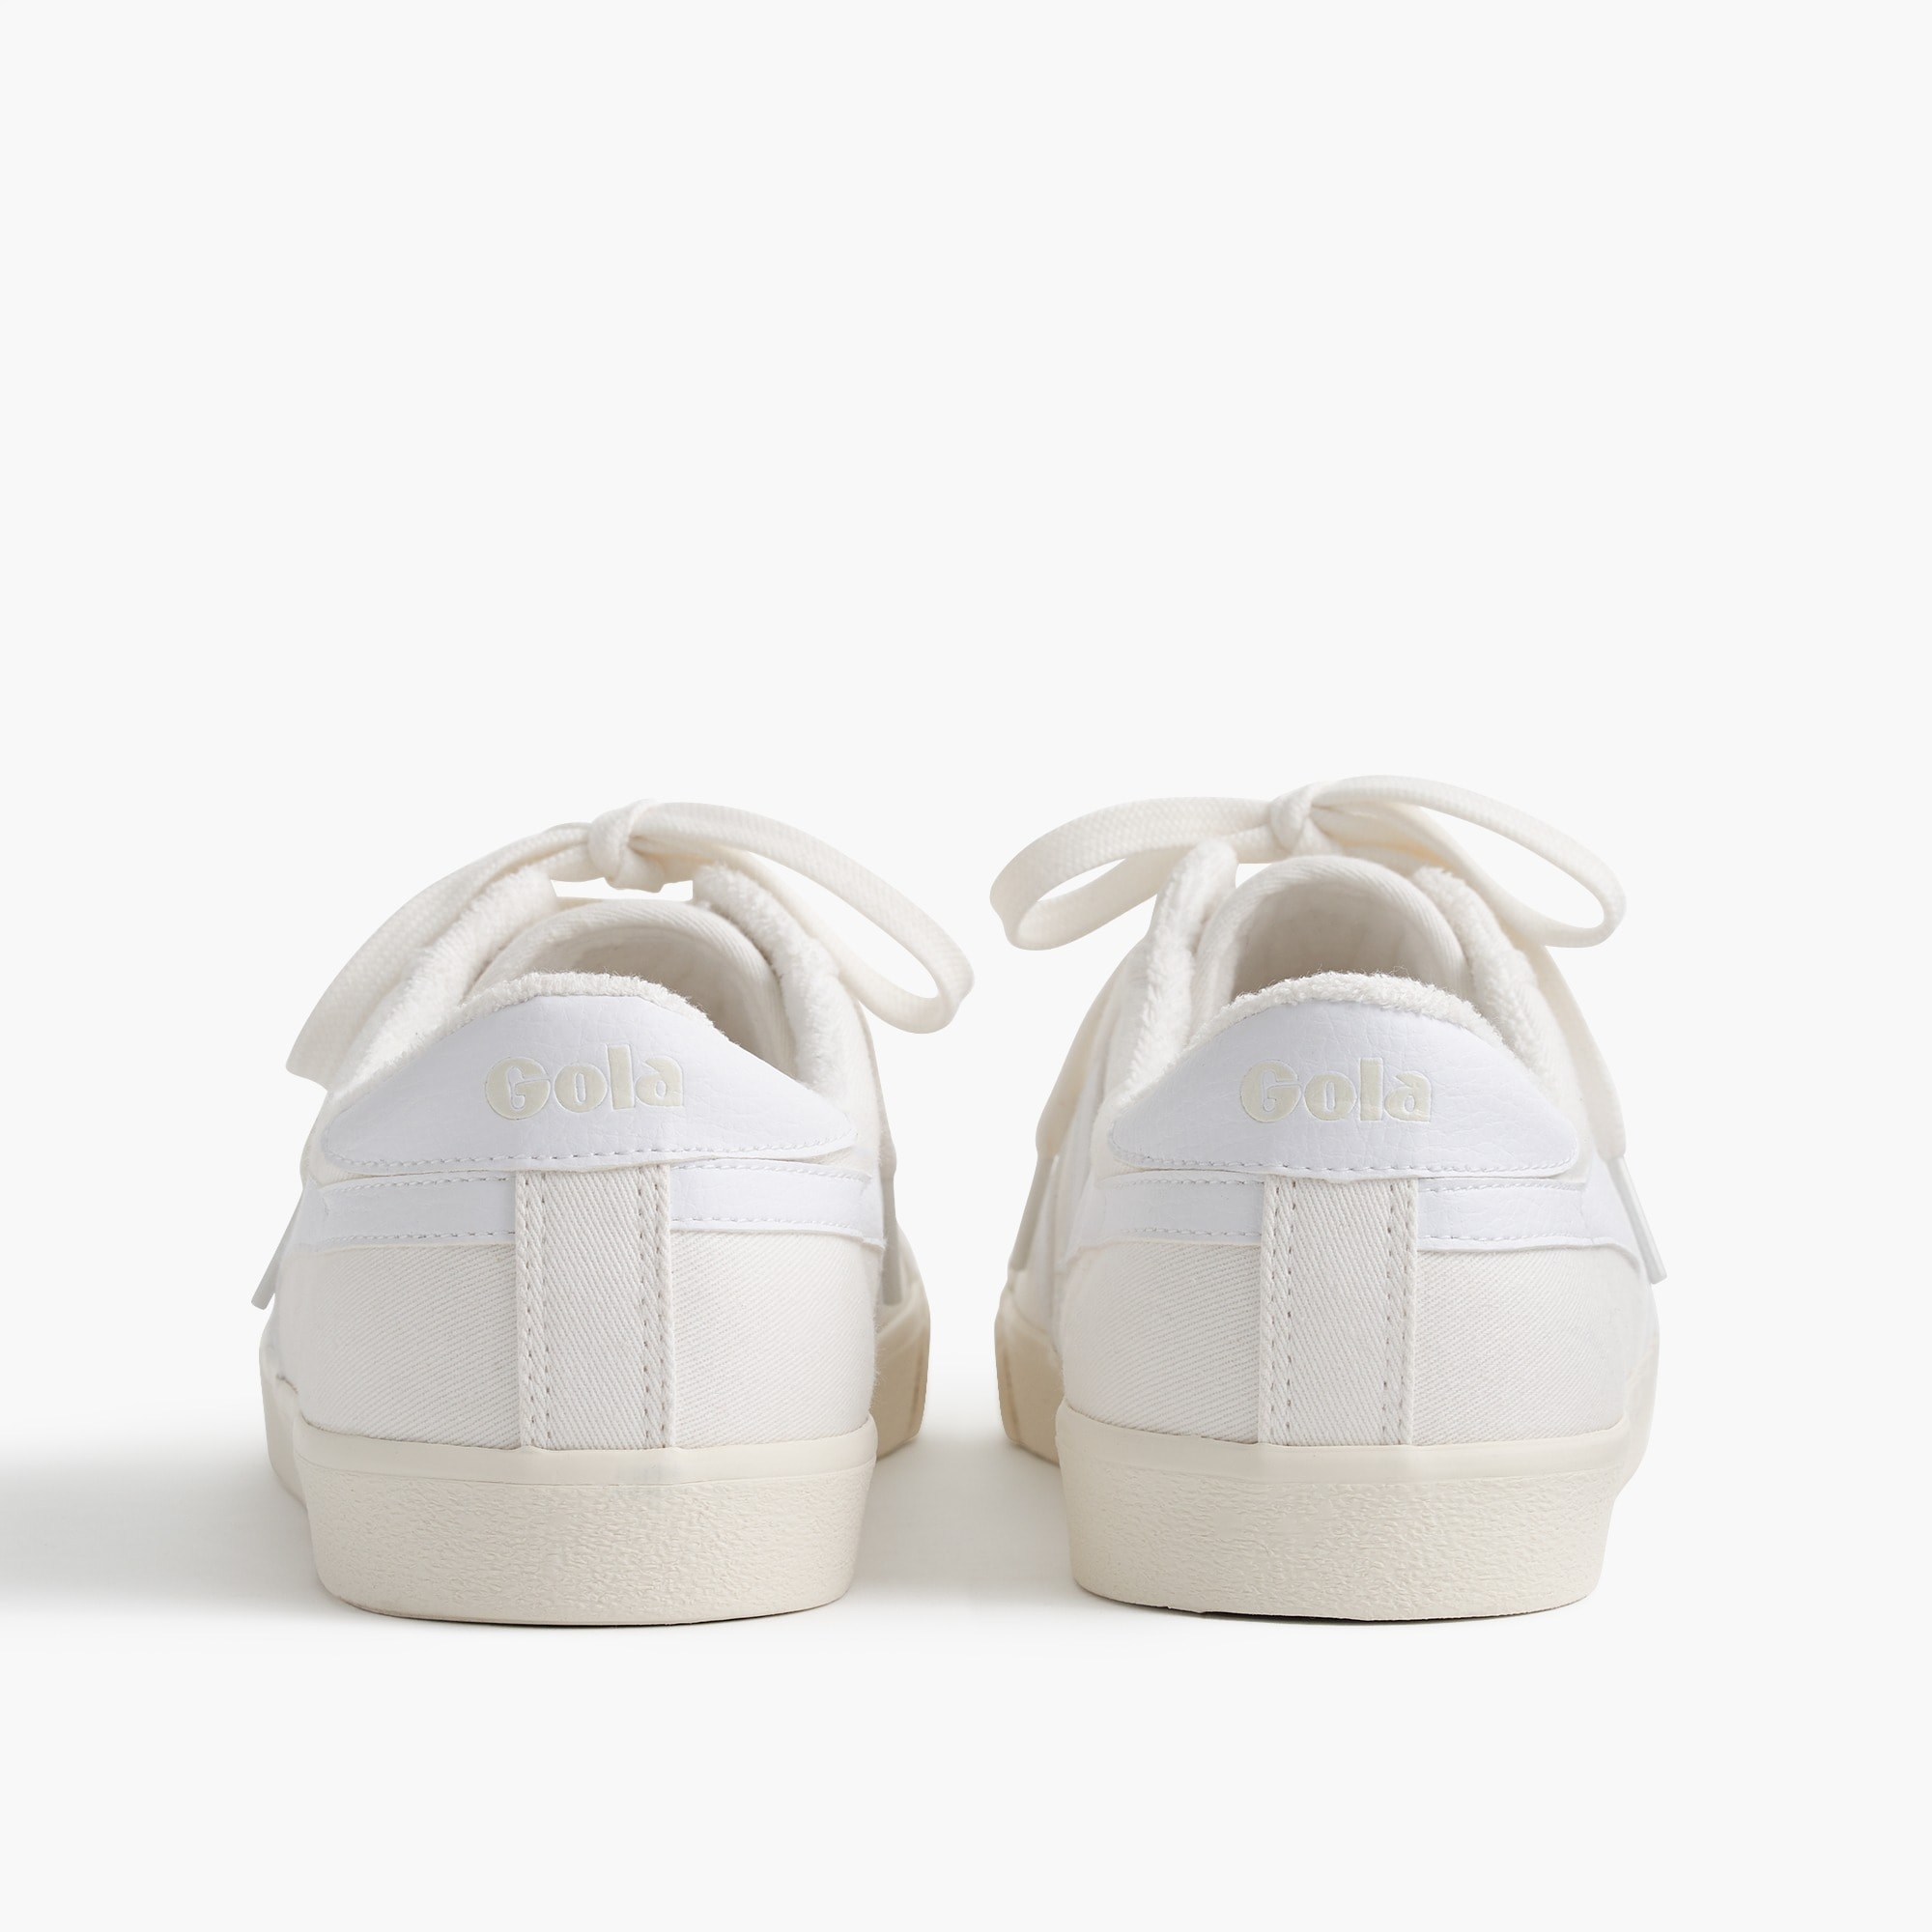 Gola® for J.Crew sneakers in white